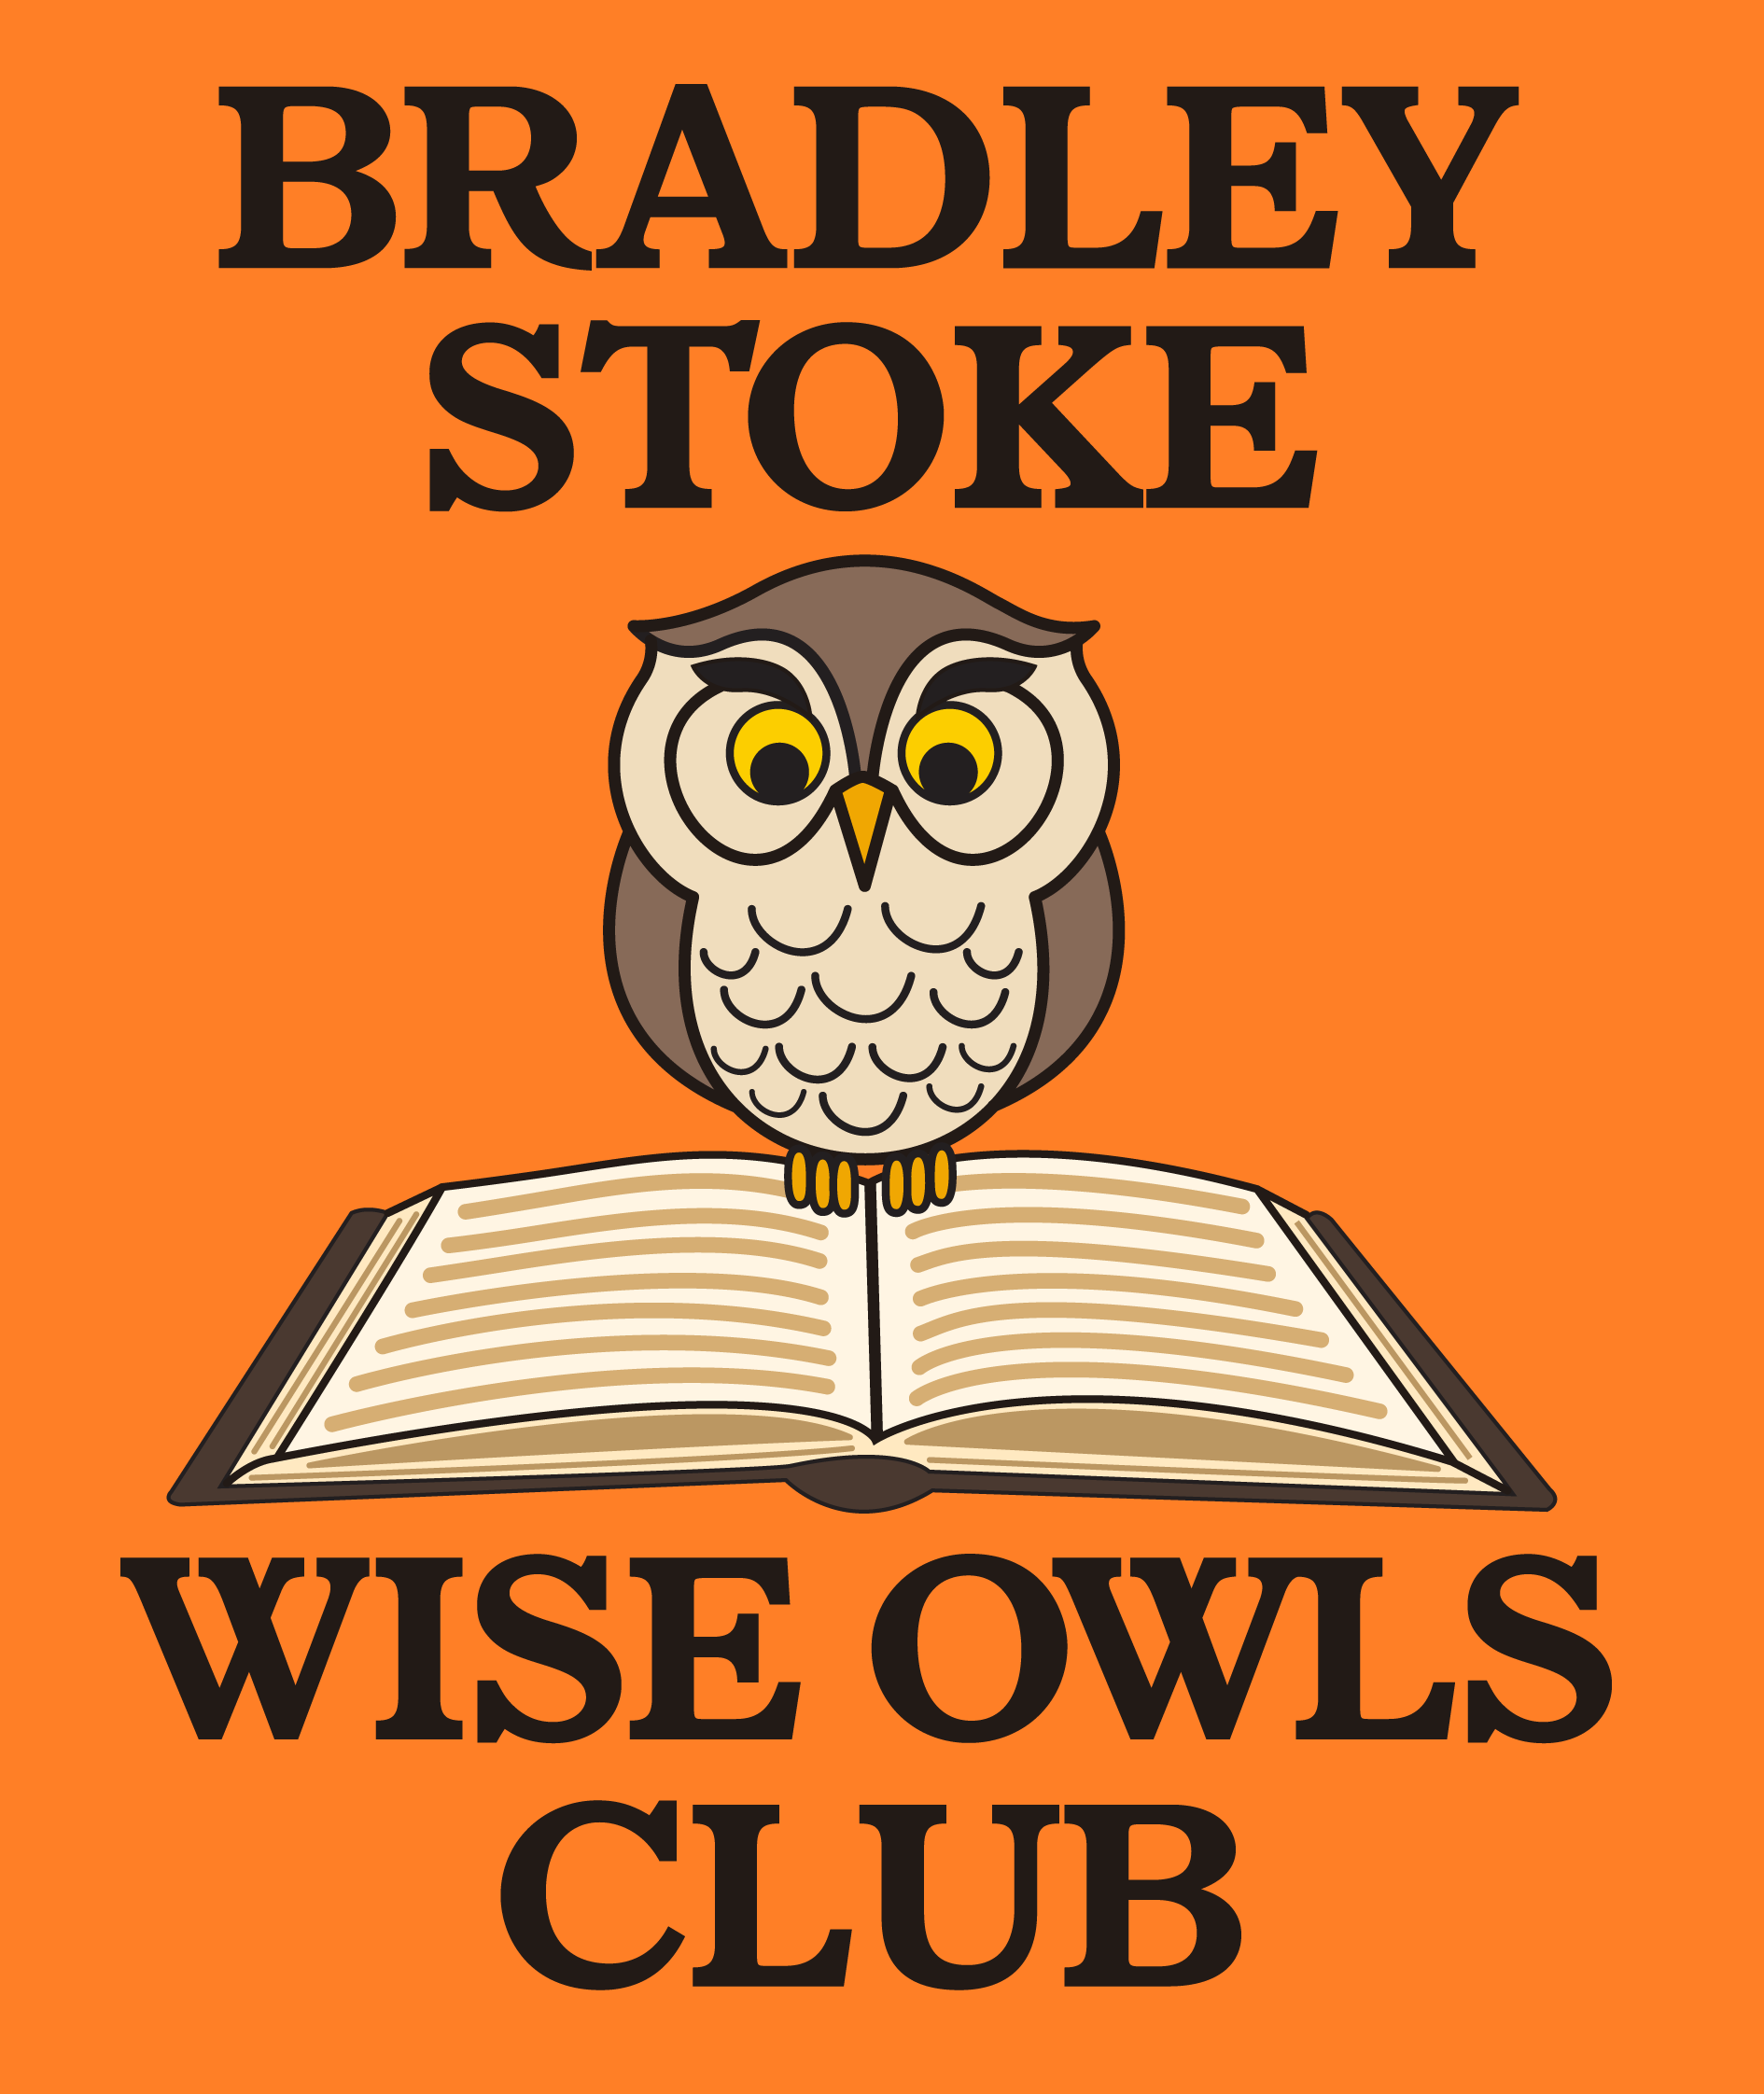 Bradley Stoke Wise Owls Club